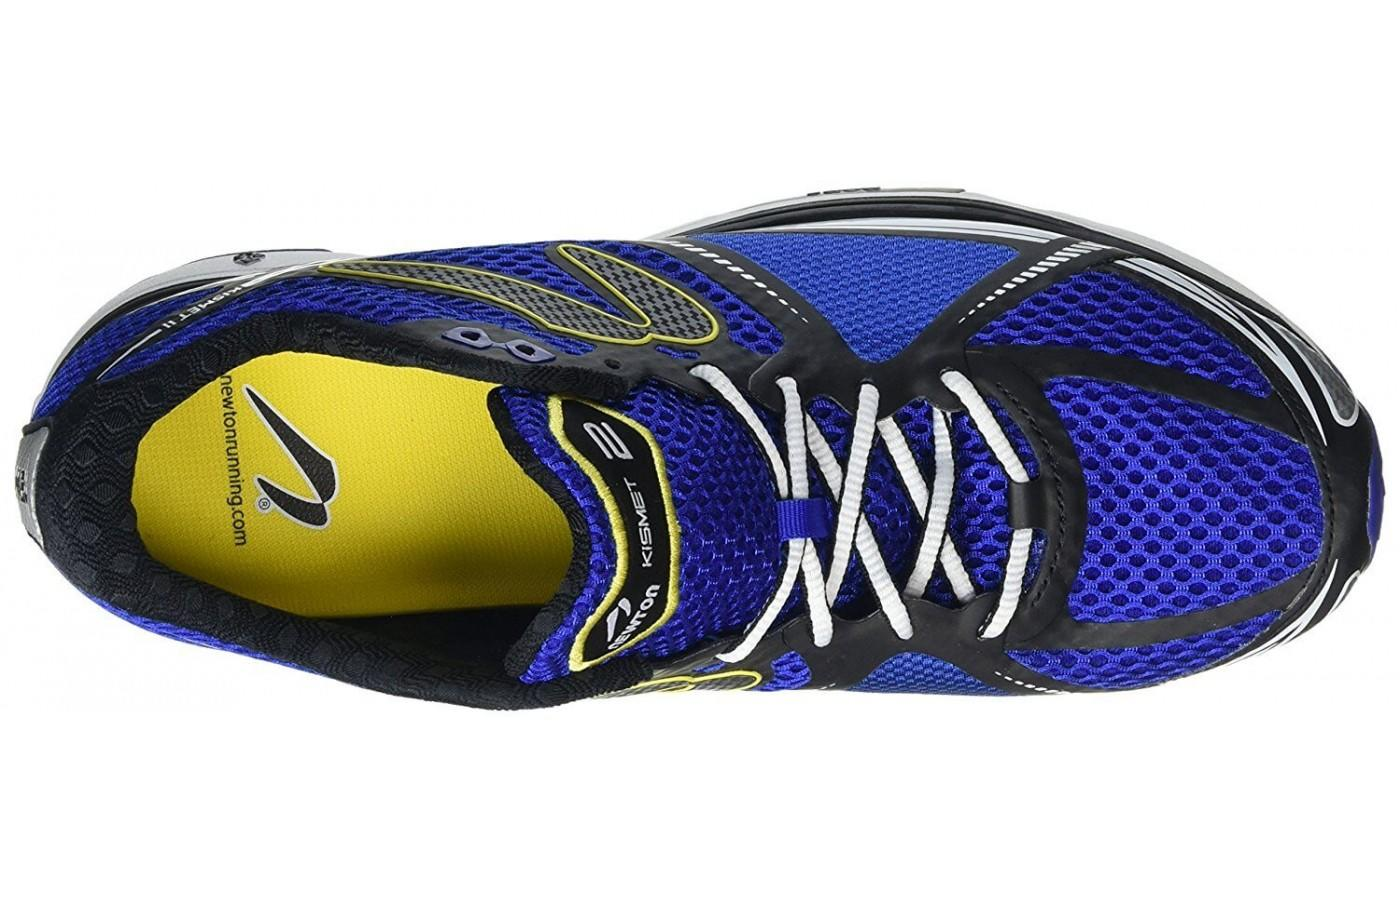 The shoe comes with metatarsal stretch panels for a customizable fit